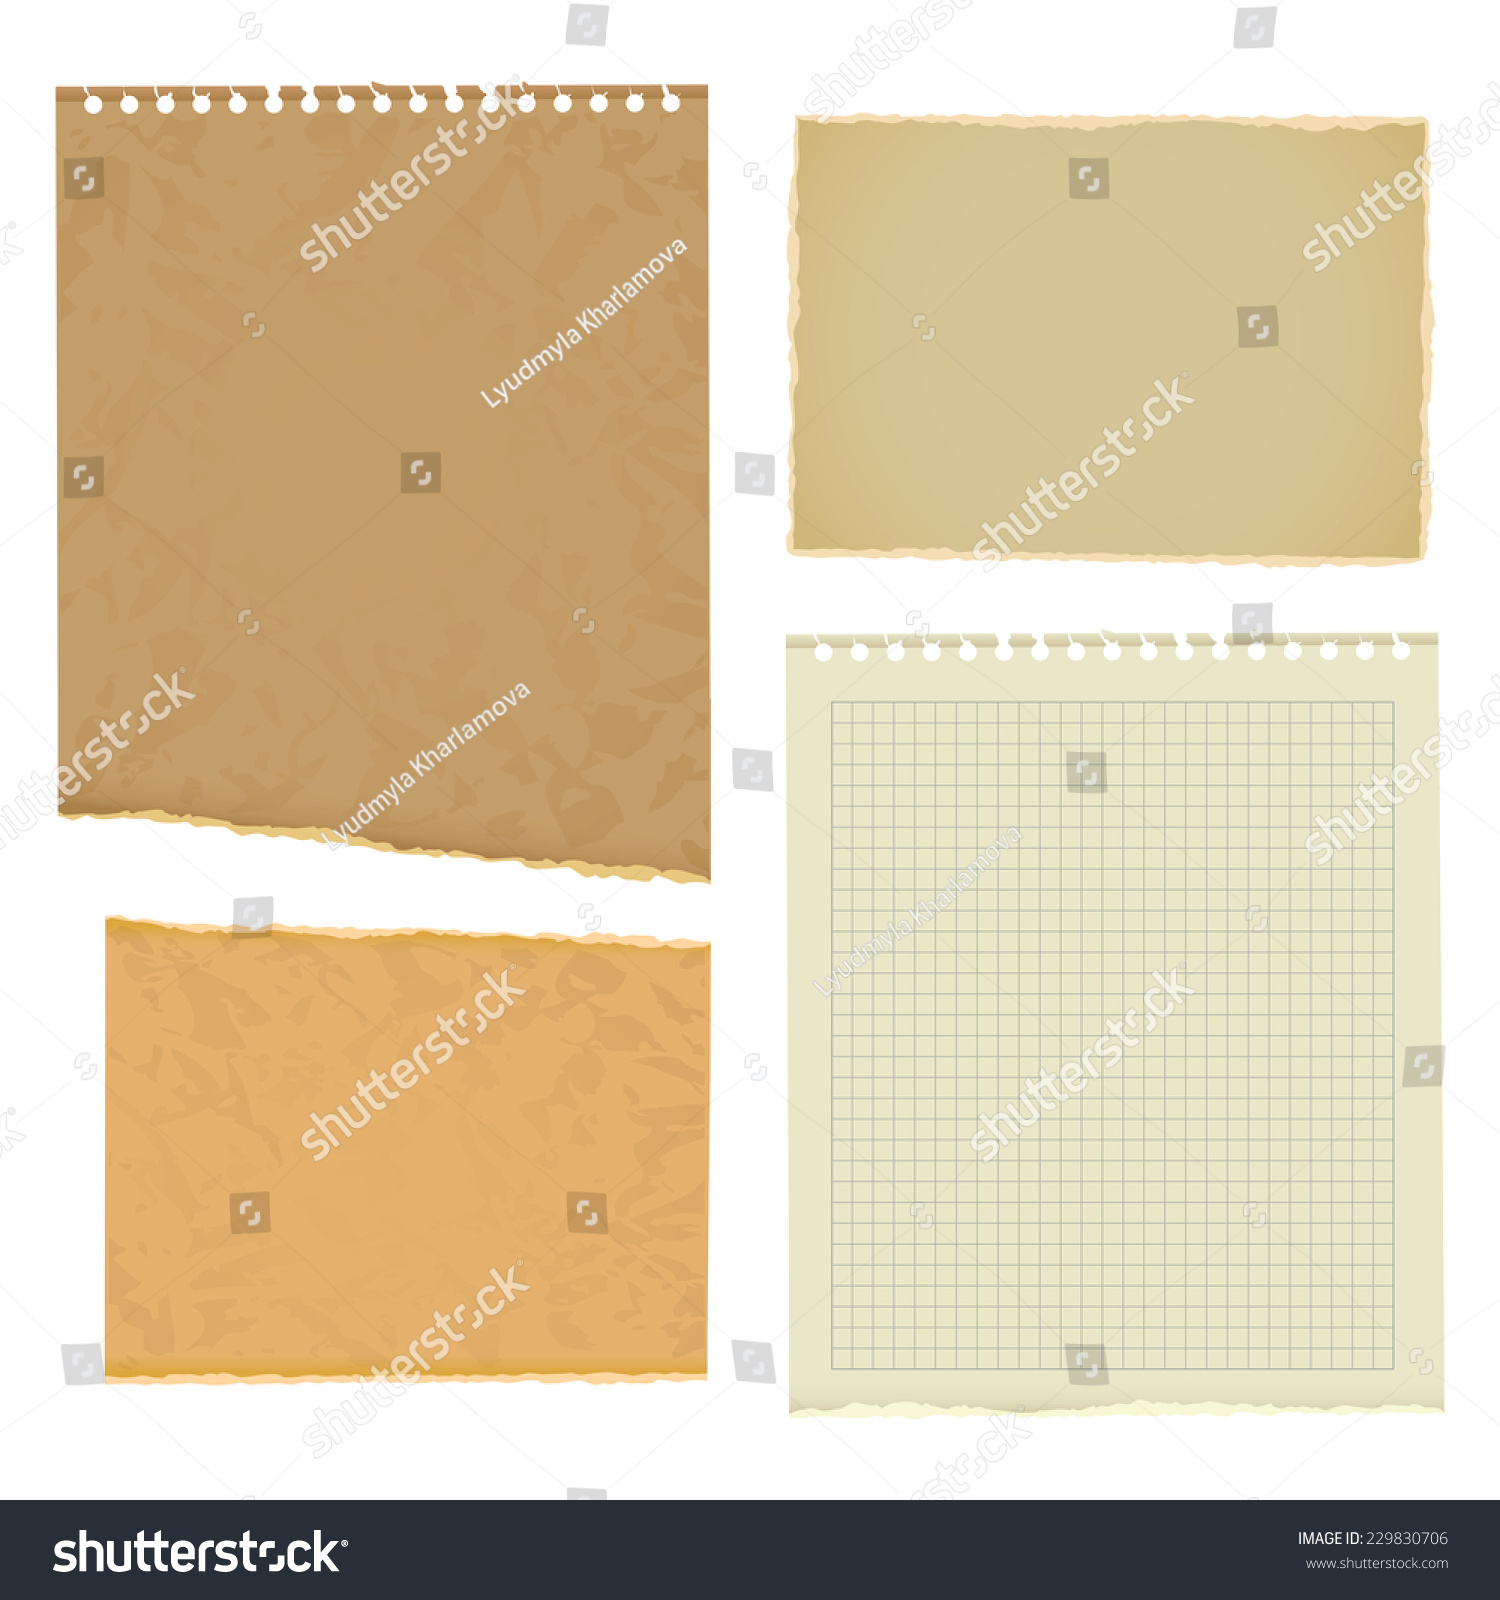 Blank Worksheet Exercise Book Old Thick Paper With Ragged